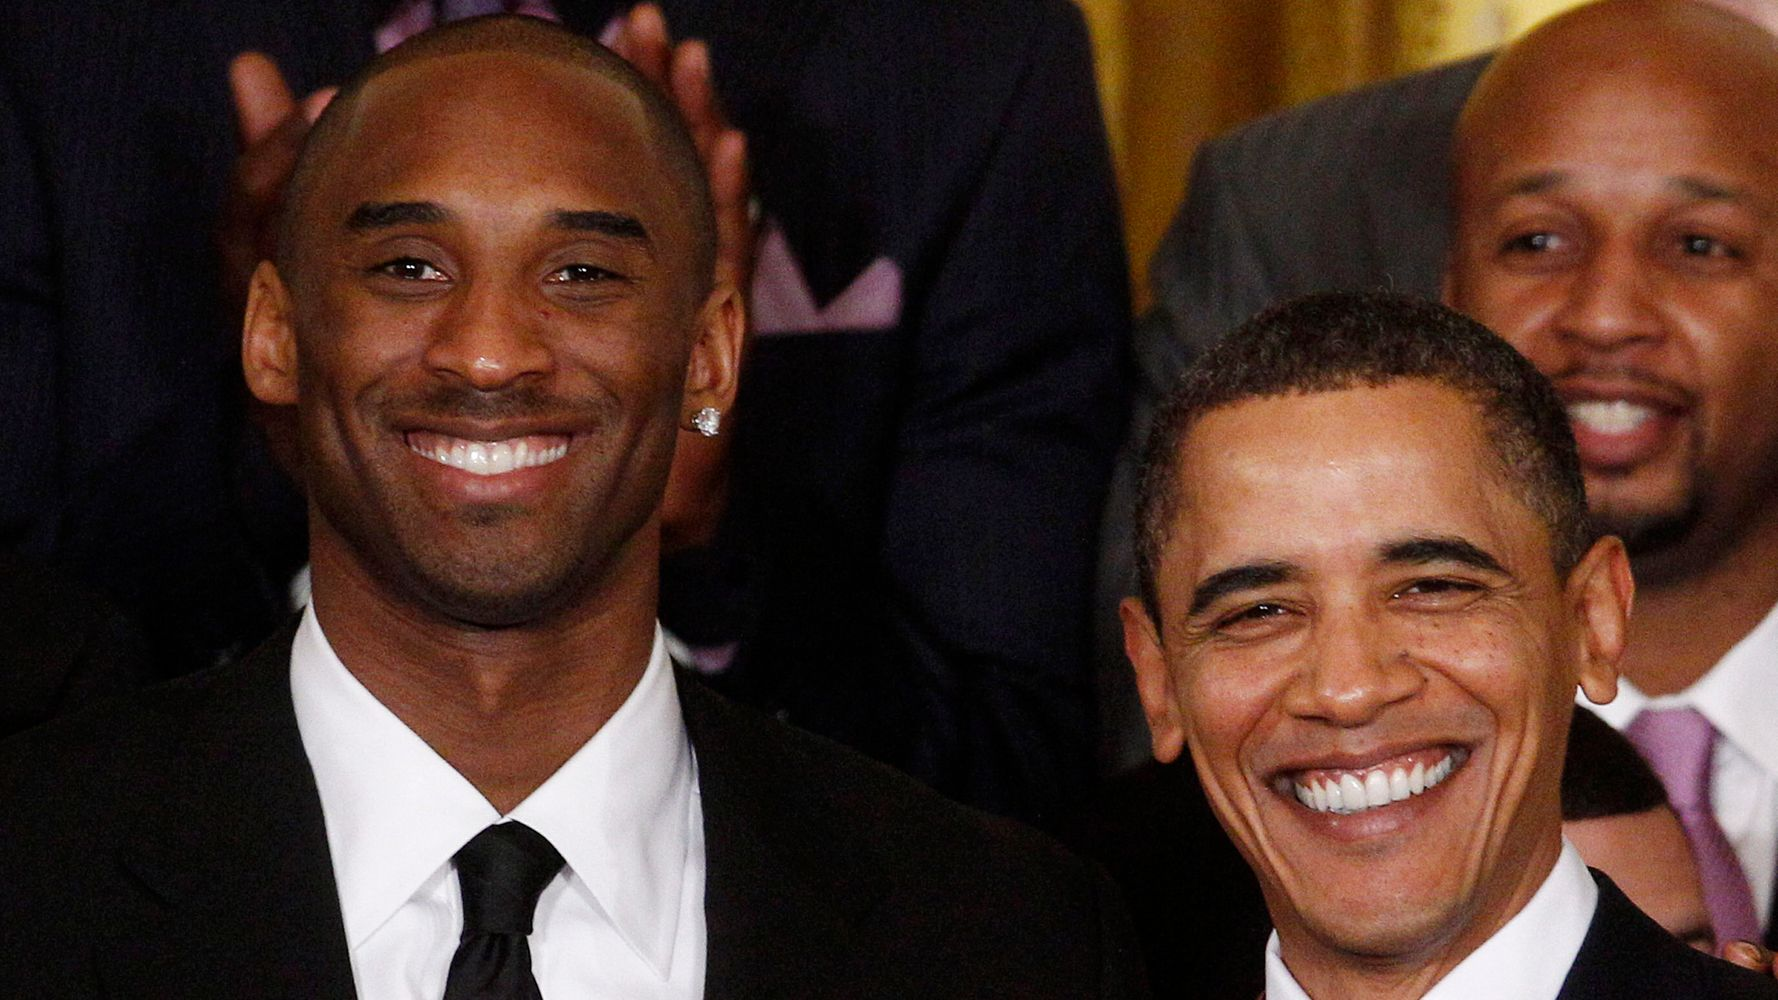 Barack Obama Remembers Kobe Bryant As A 'Legend On The Court'